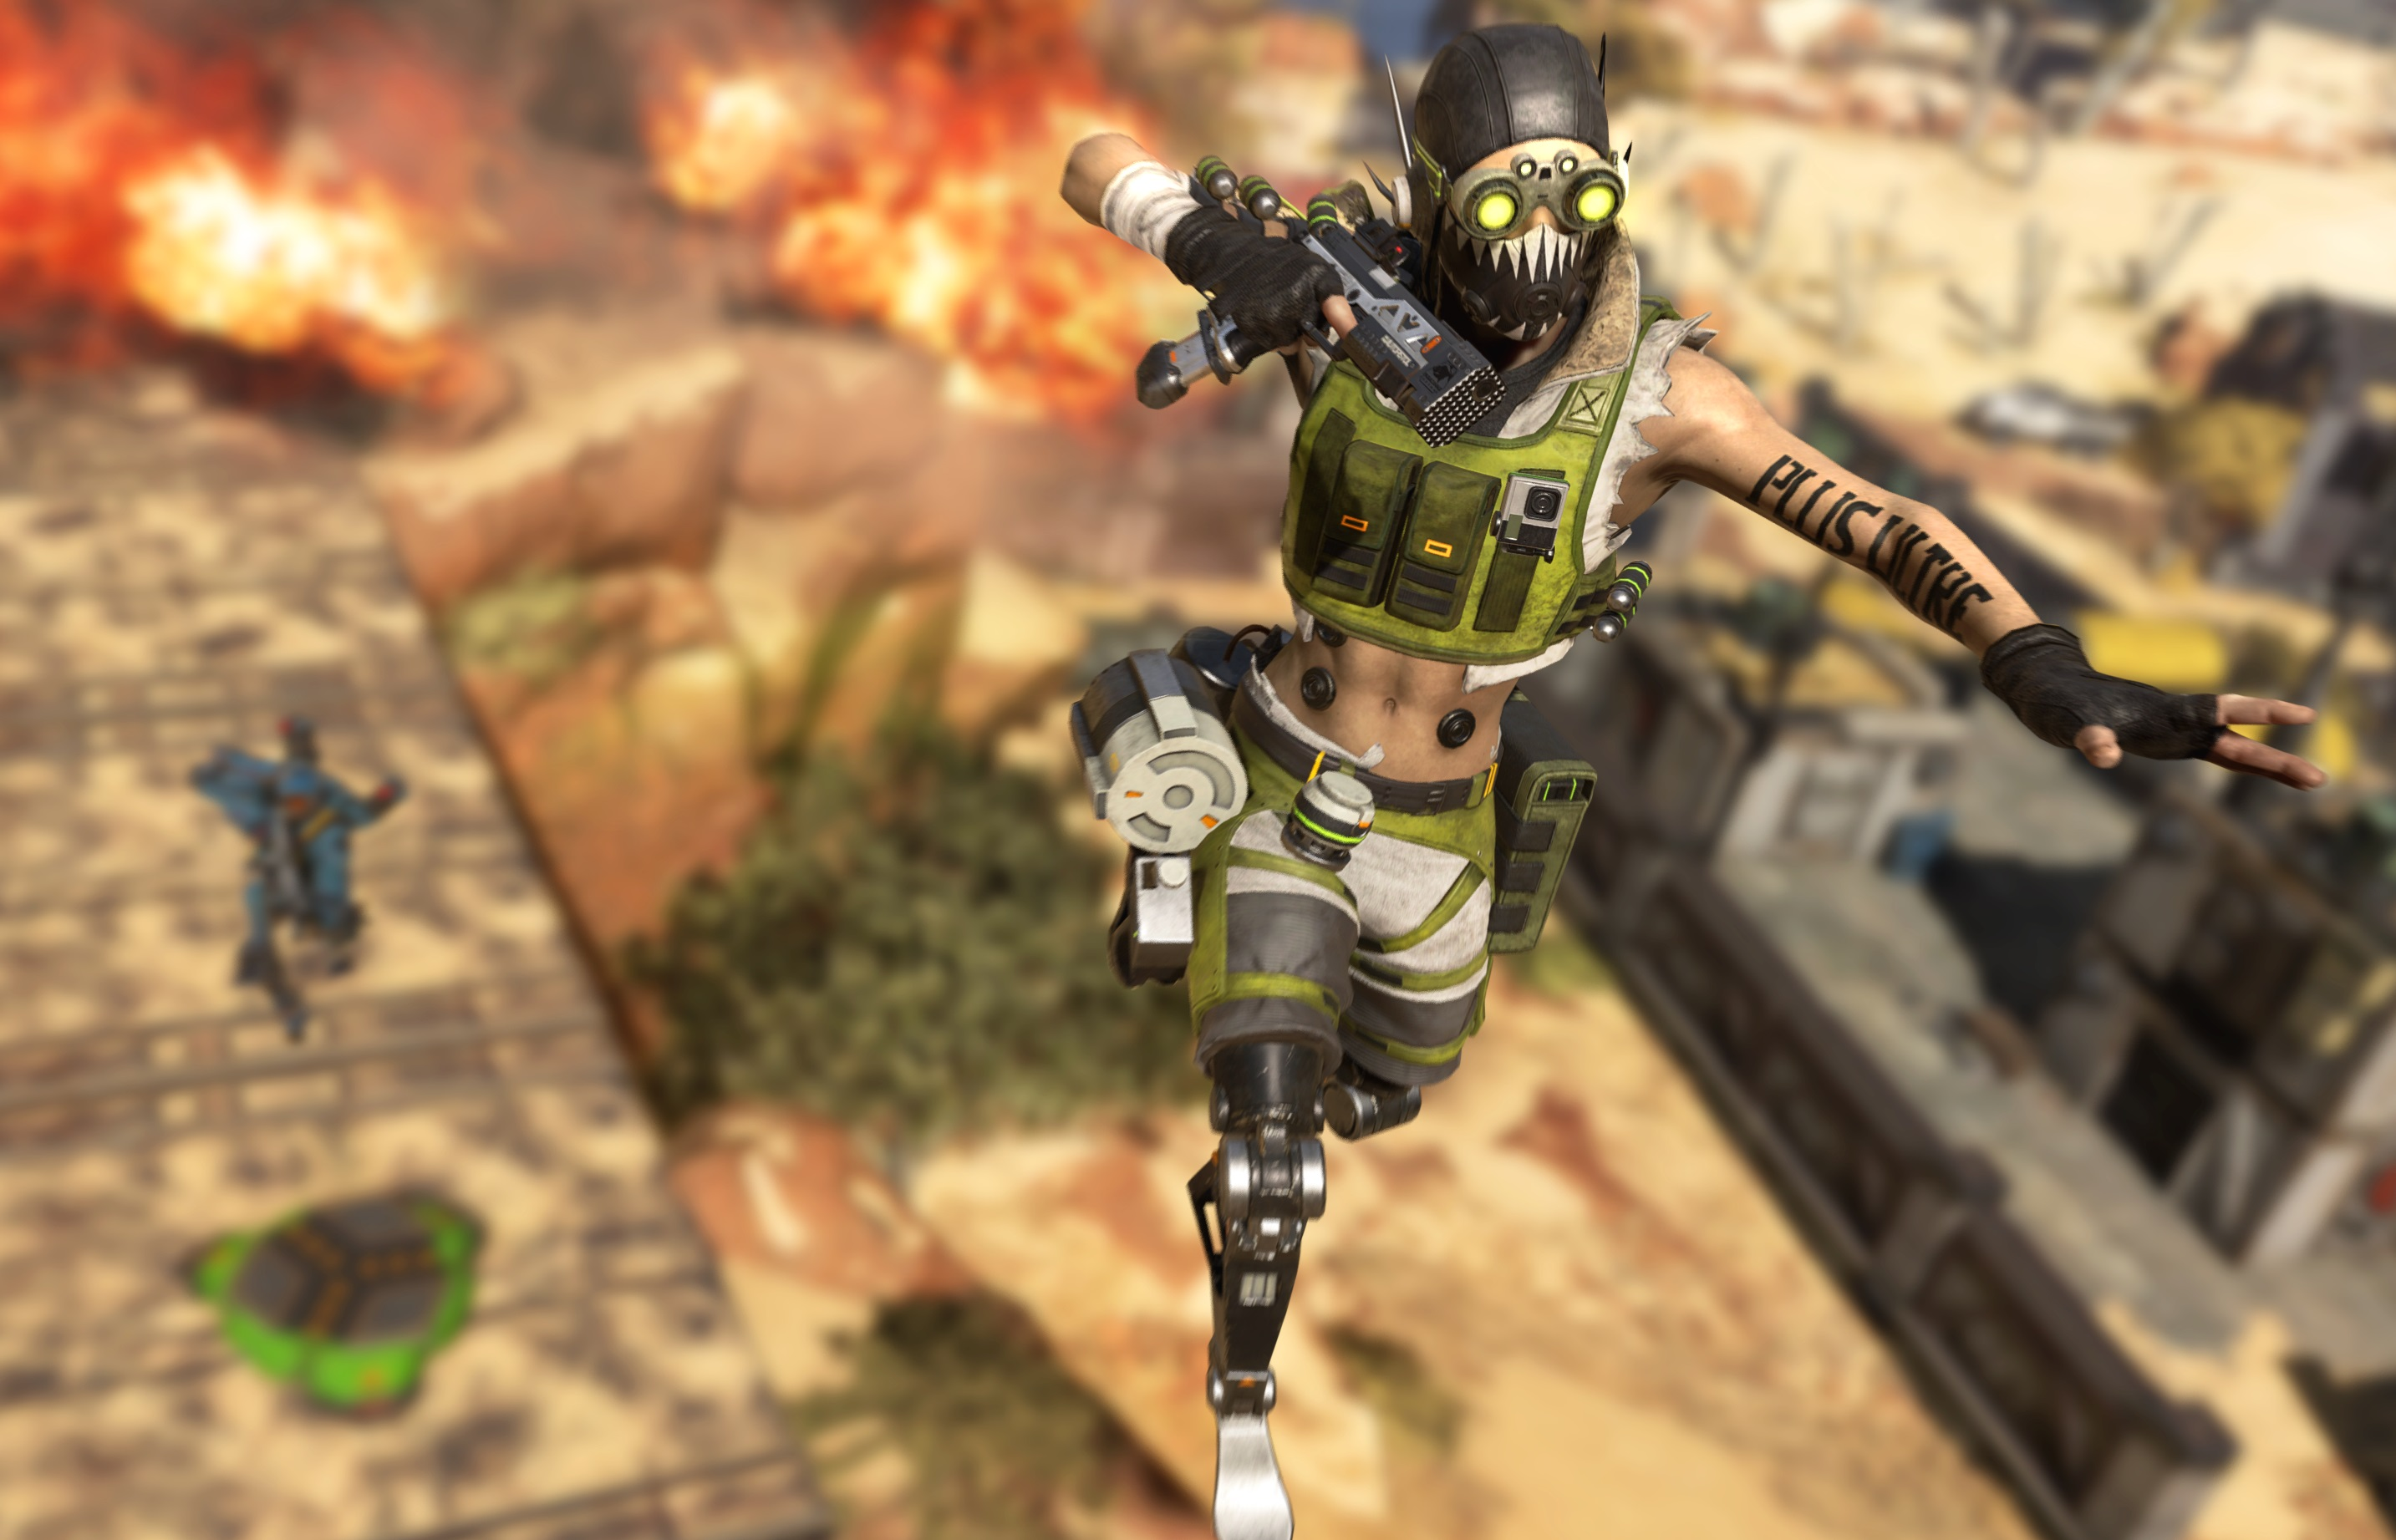 You can control Apex Legends' bin bug that catapults you across the map, apparently